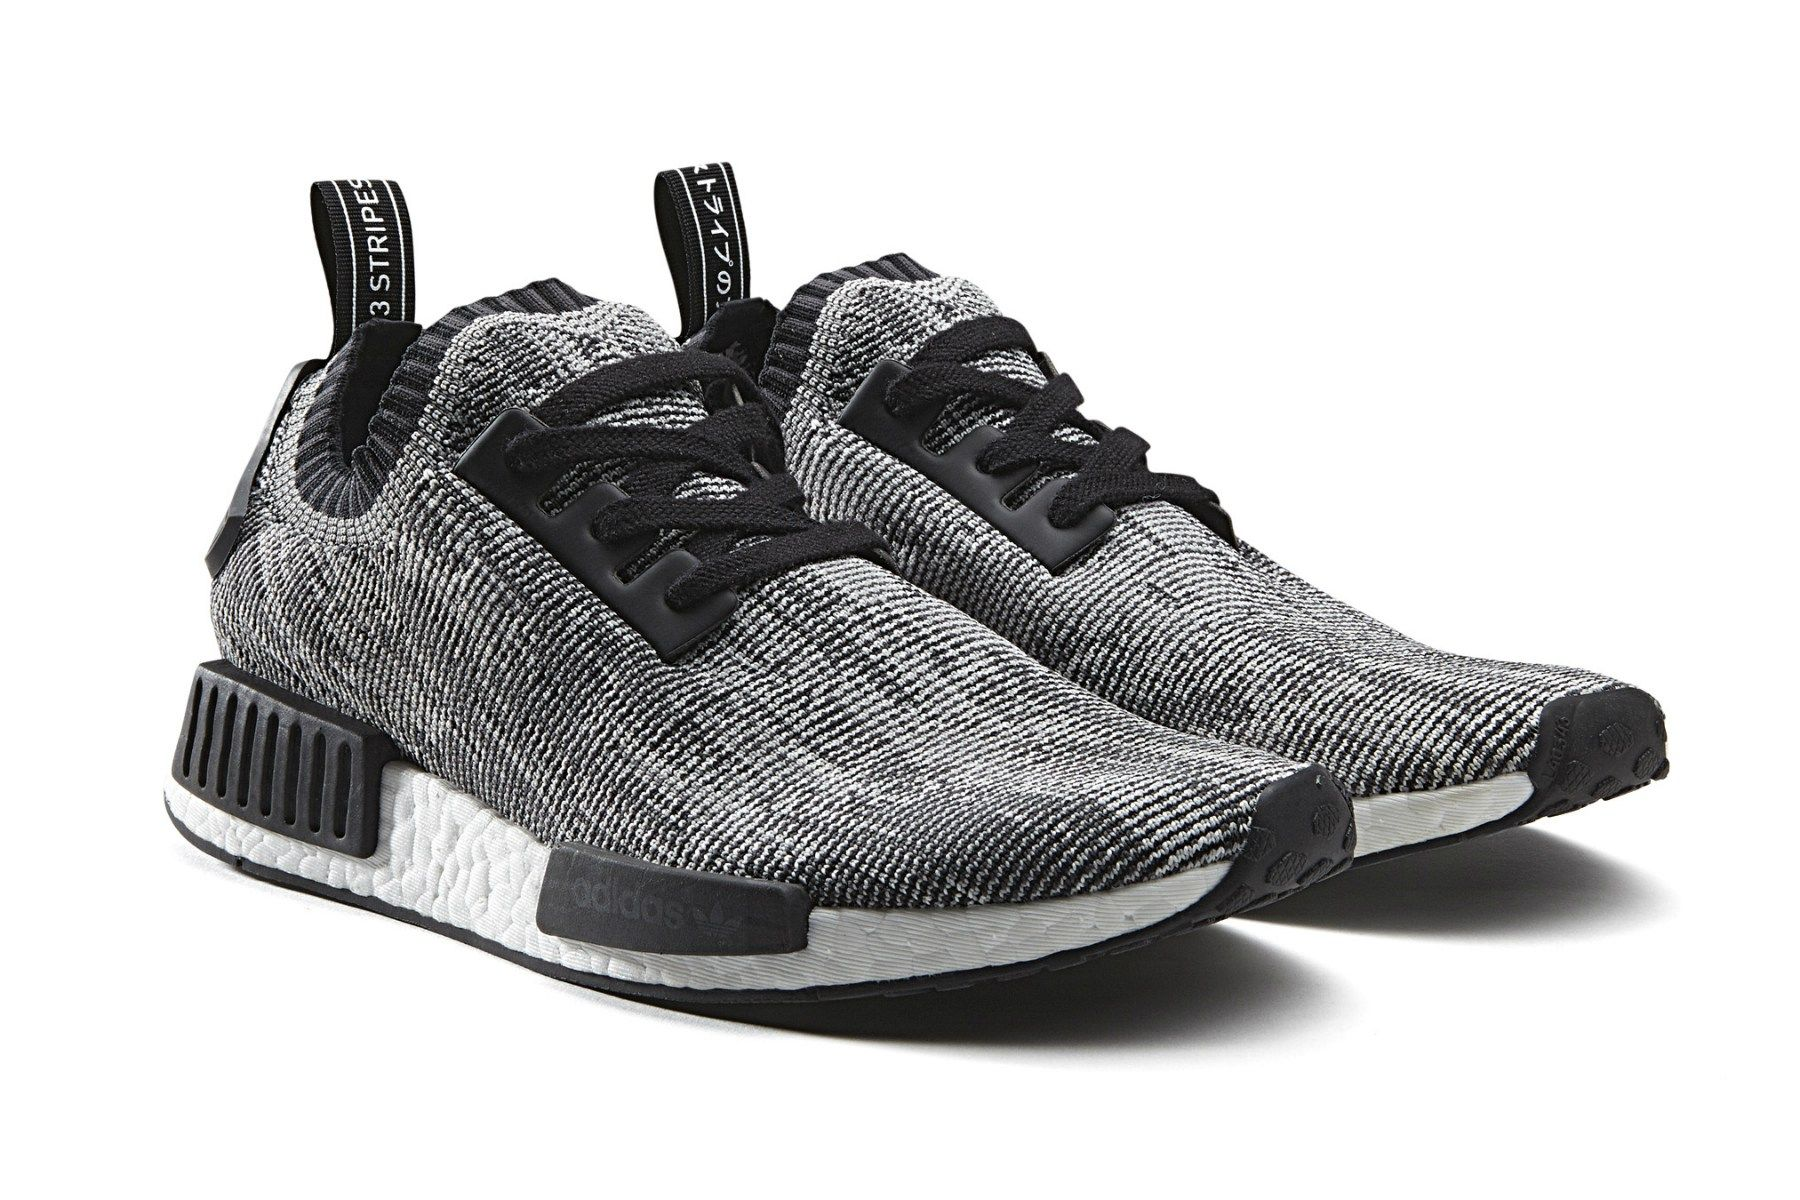 Cheap Adidas NMD Xr1 Primeknit Glitch S32216 White Core Black